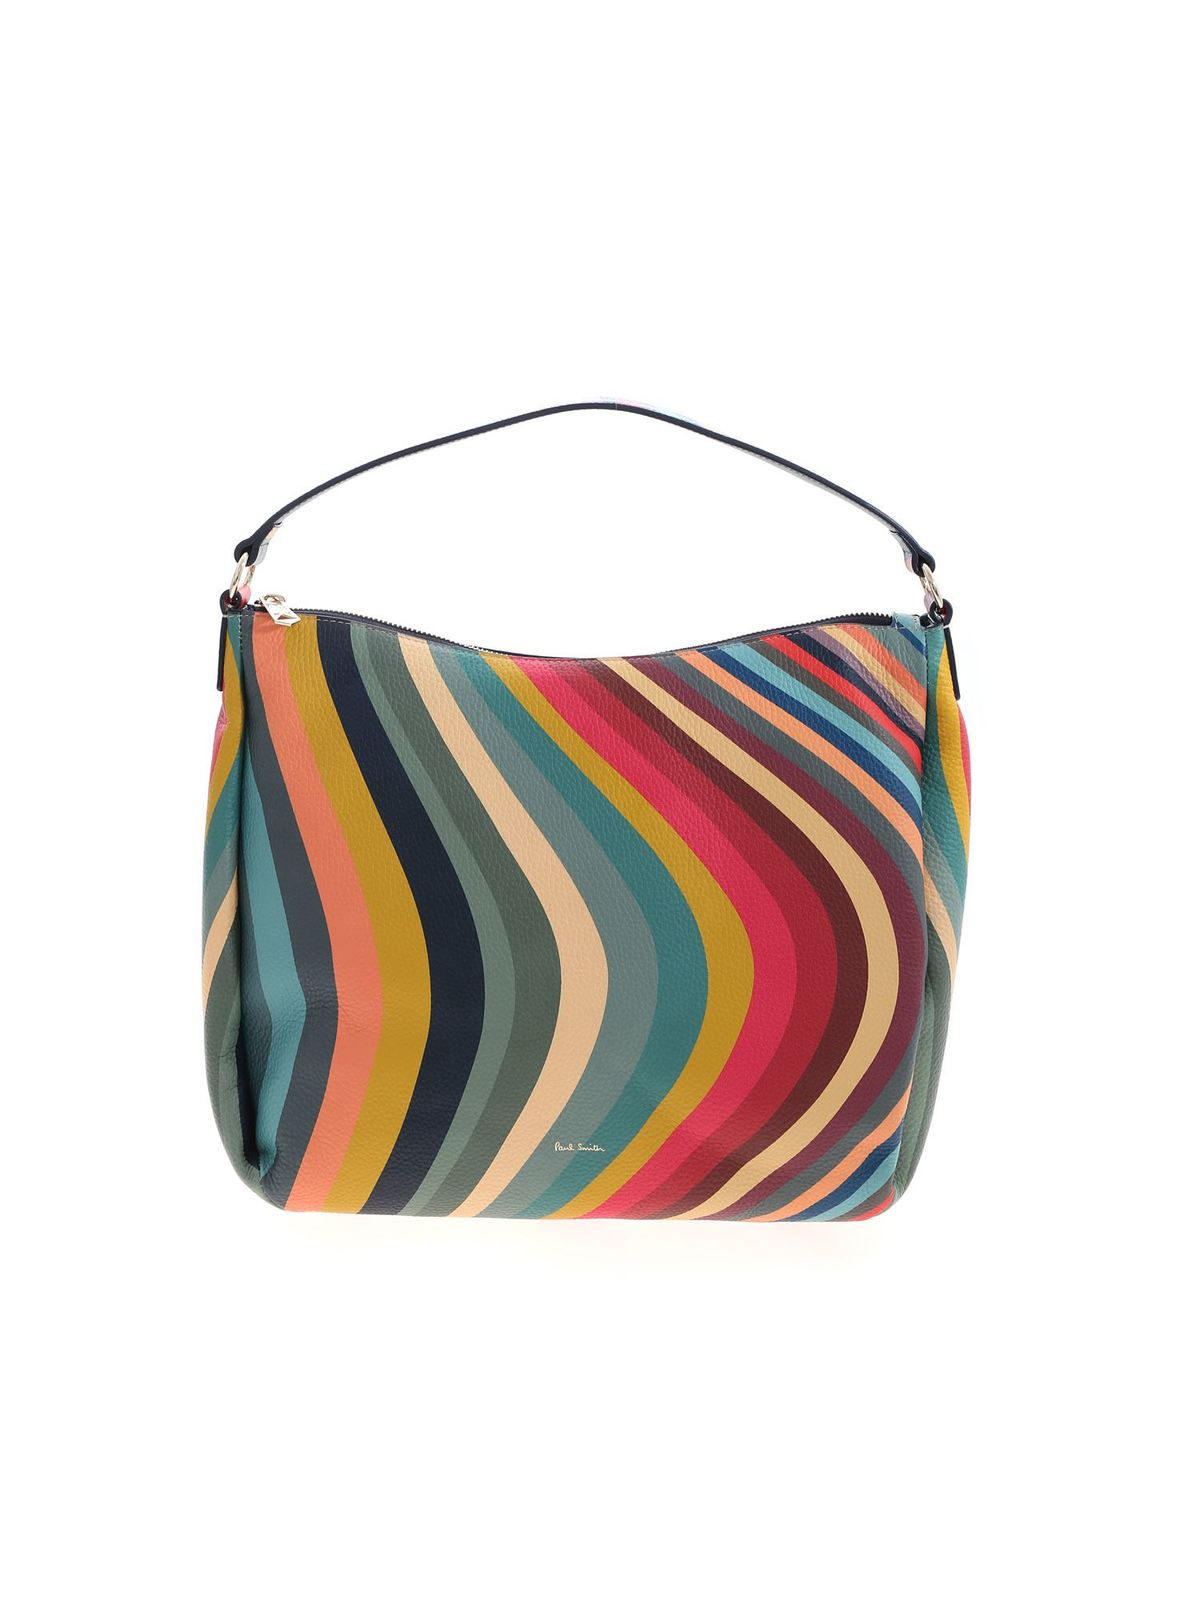 Paul Smith MULTICOLOR SWIRL PRINT BAG